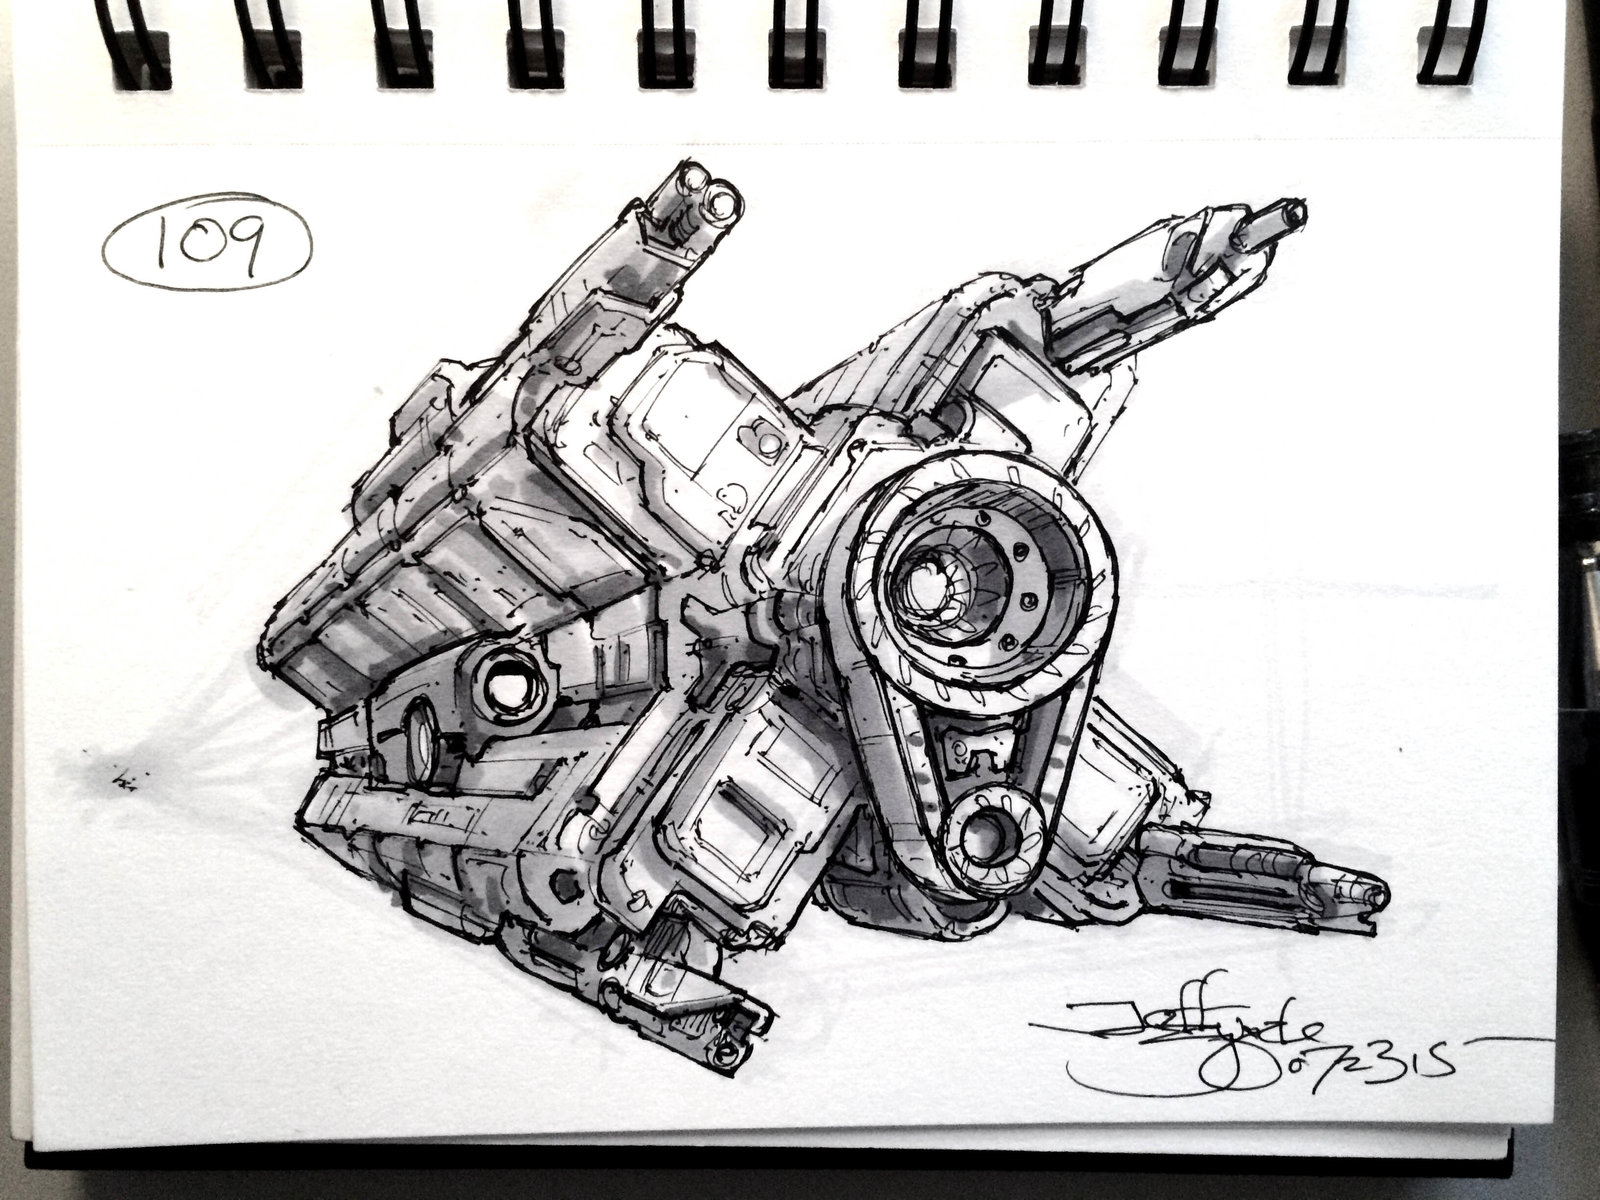 SpaceshipADay 109